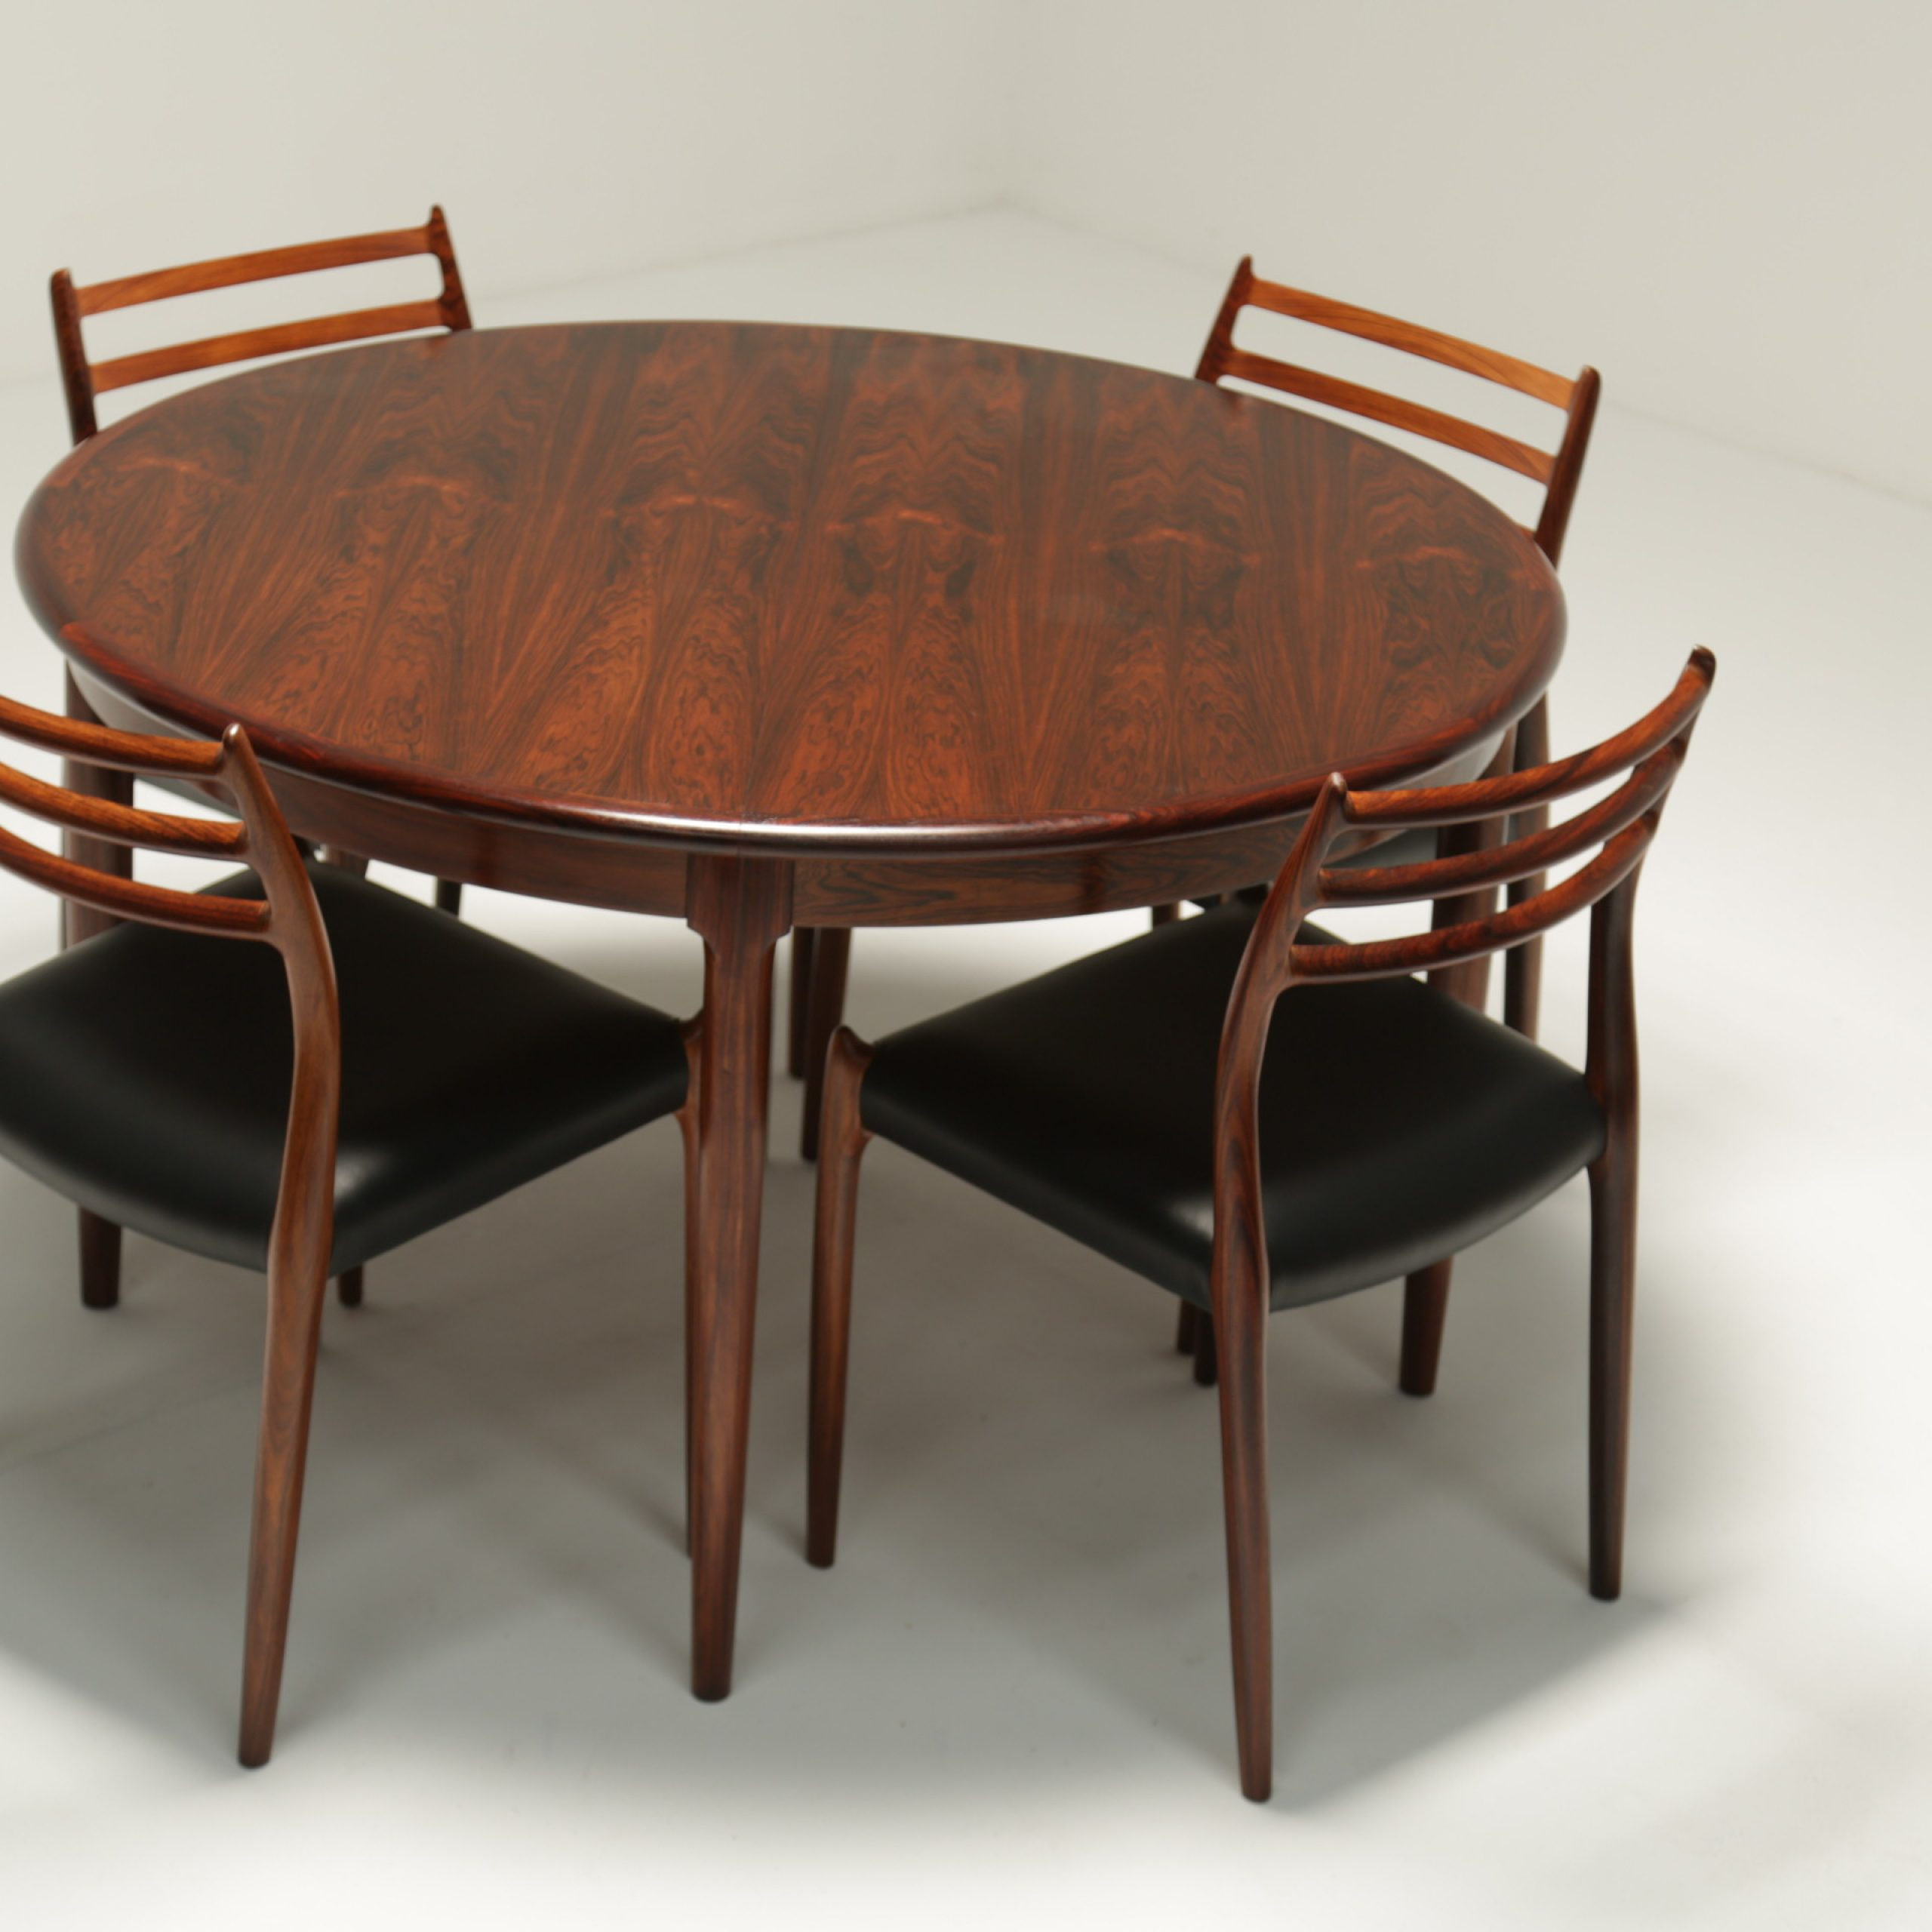 Niels Moller Rosewood Dining Table Model 15 With Butterfly Throughout Most Recent Warnock Butterfly Leaf Trestle Dining Tables (View 10 of 15)